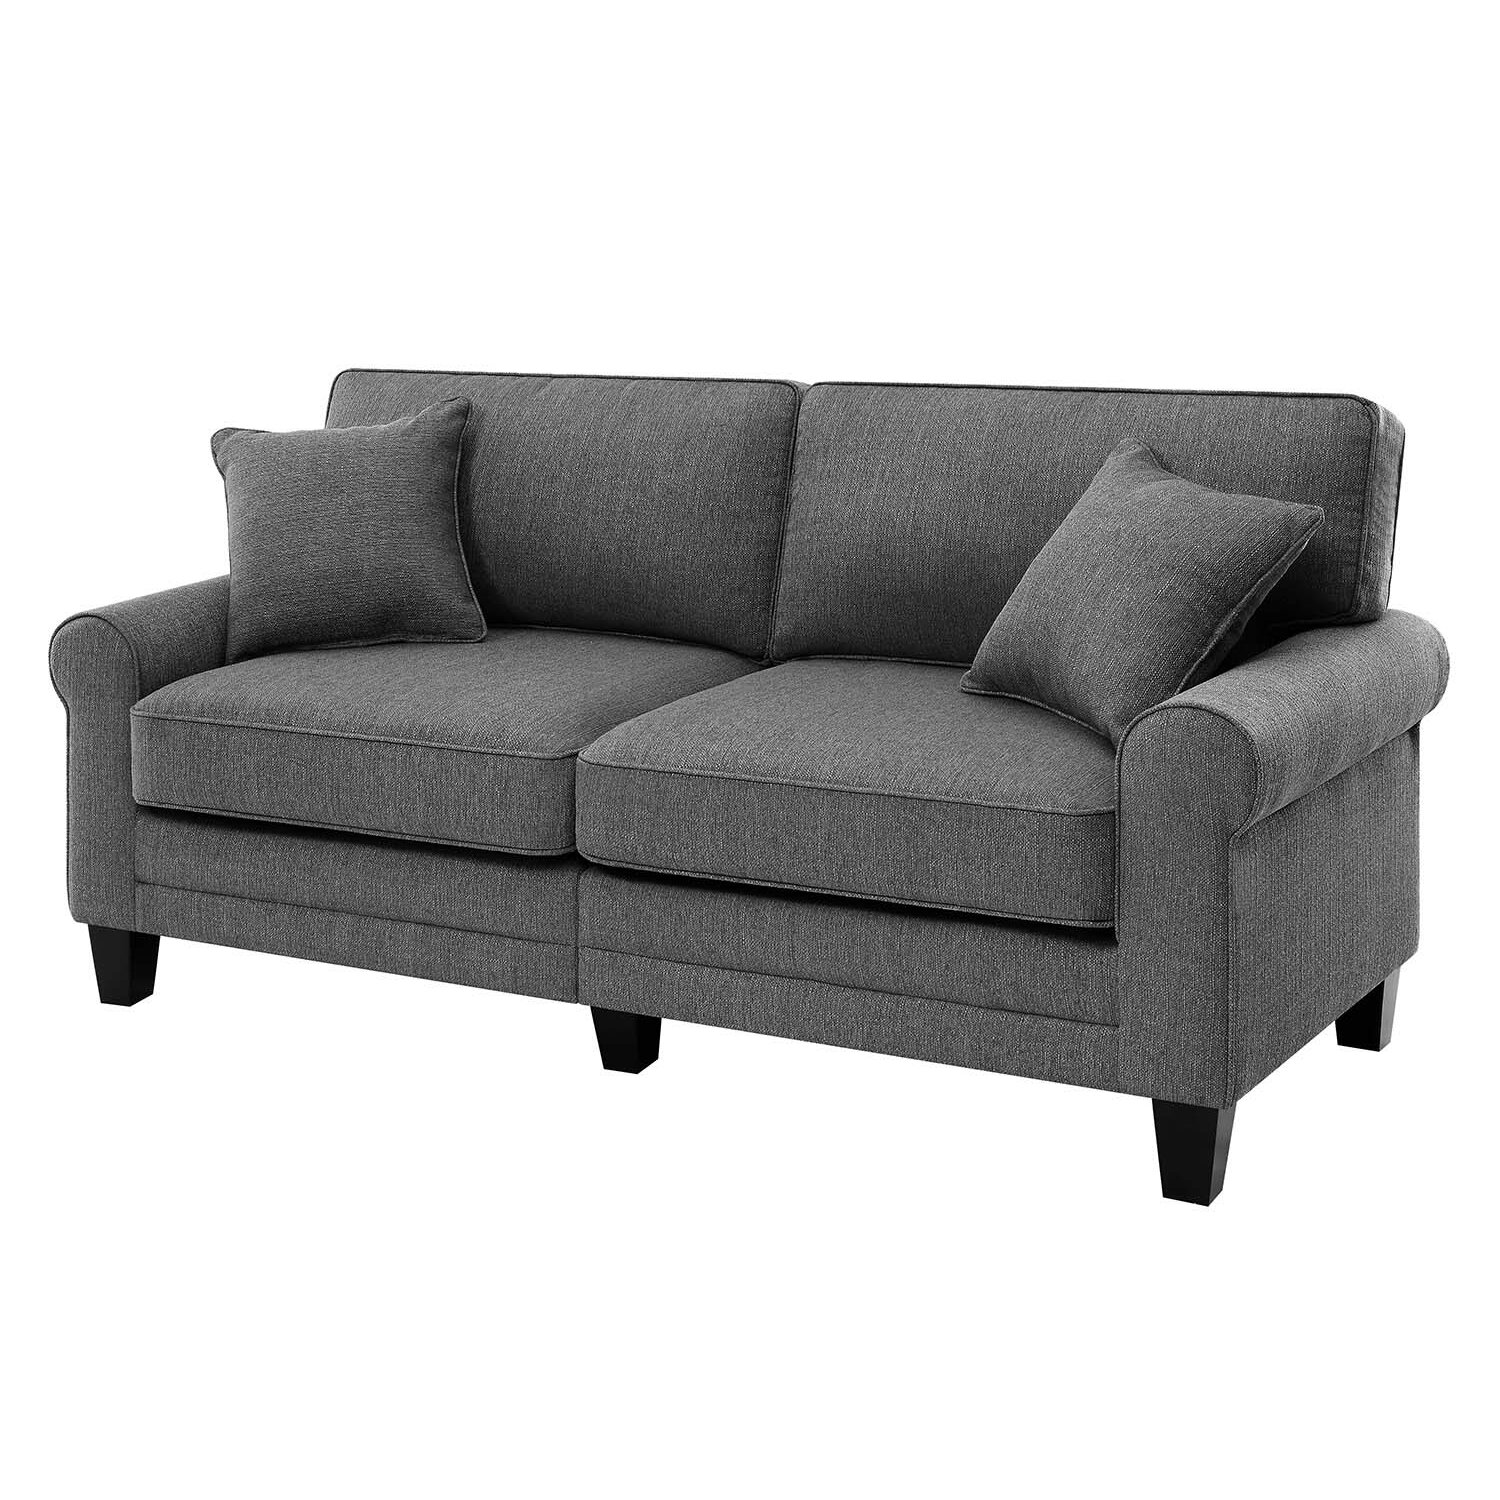 Breakwater bay hereford 78 quot rolled arm sofa amp reviews